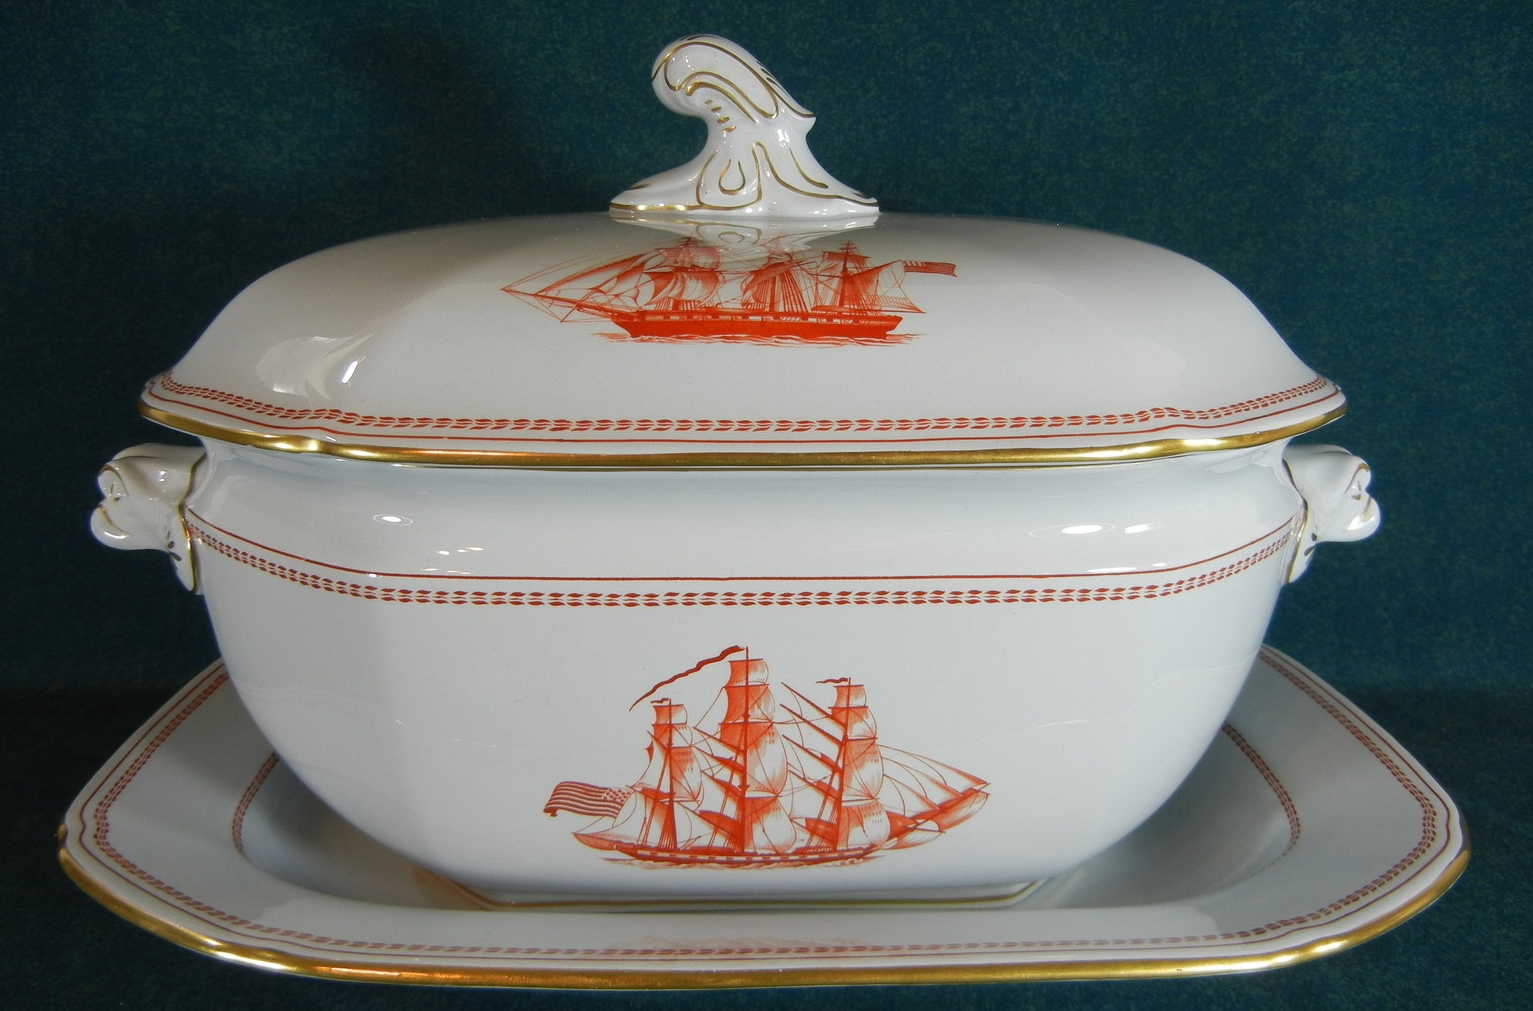 Spode History: Spode and Trade Winds